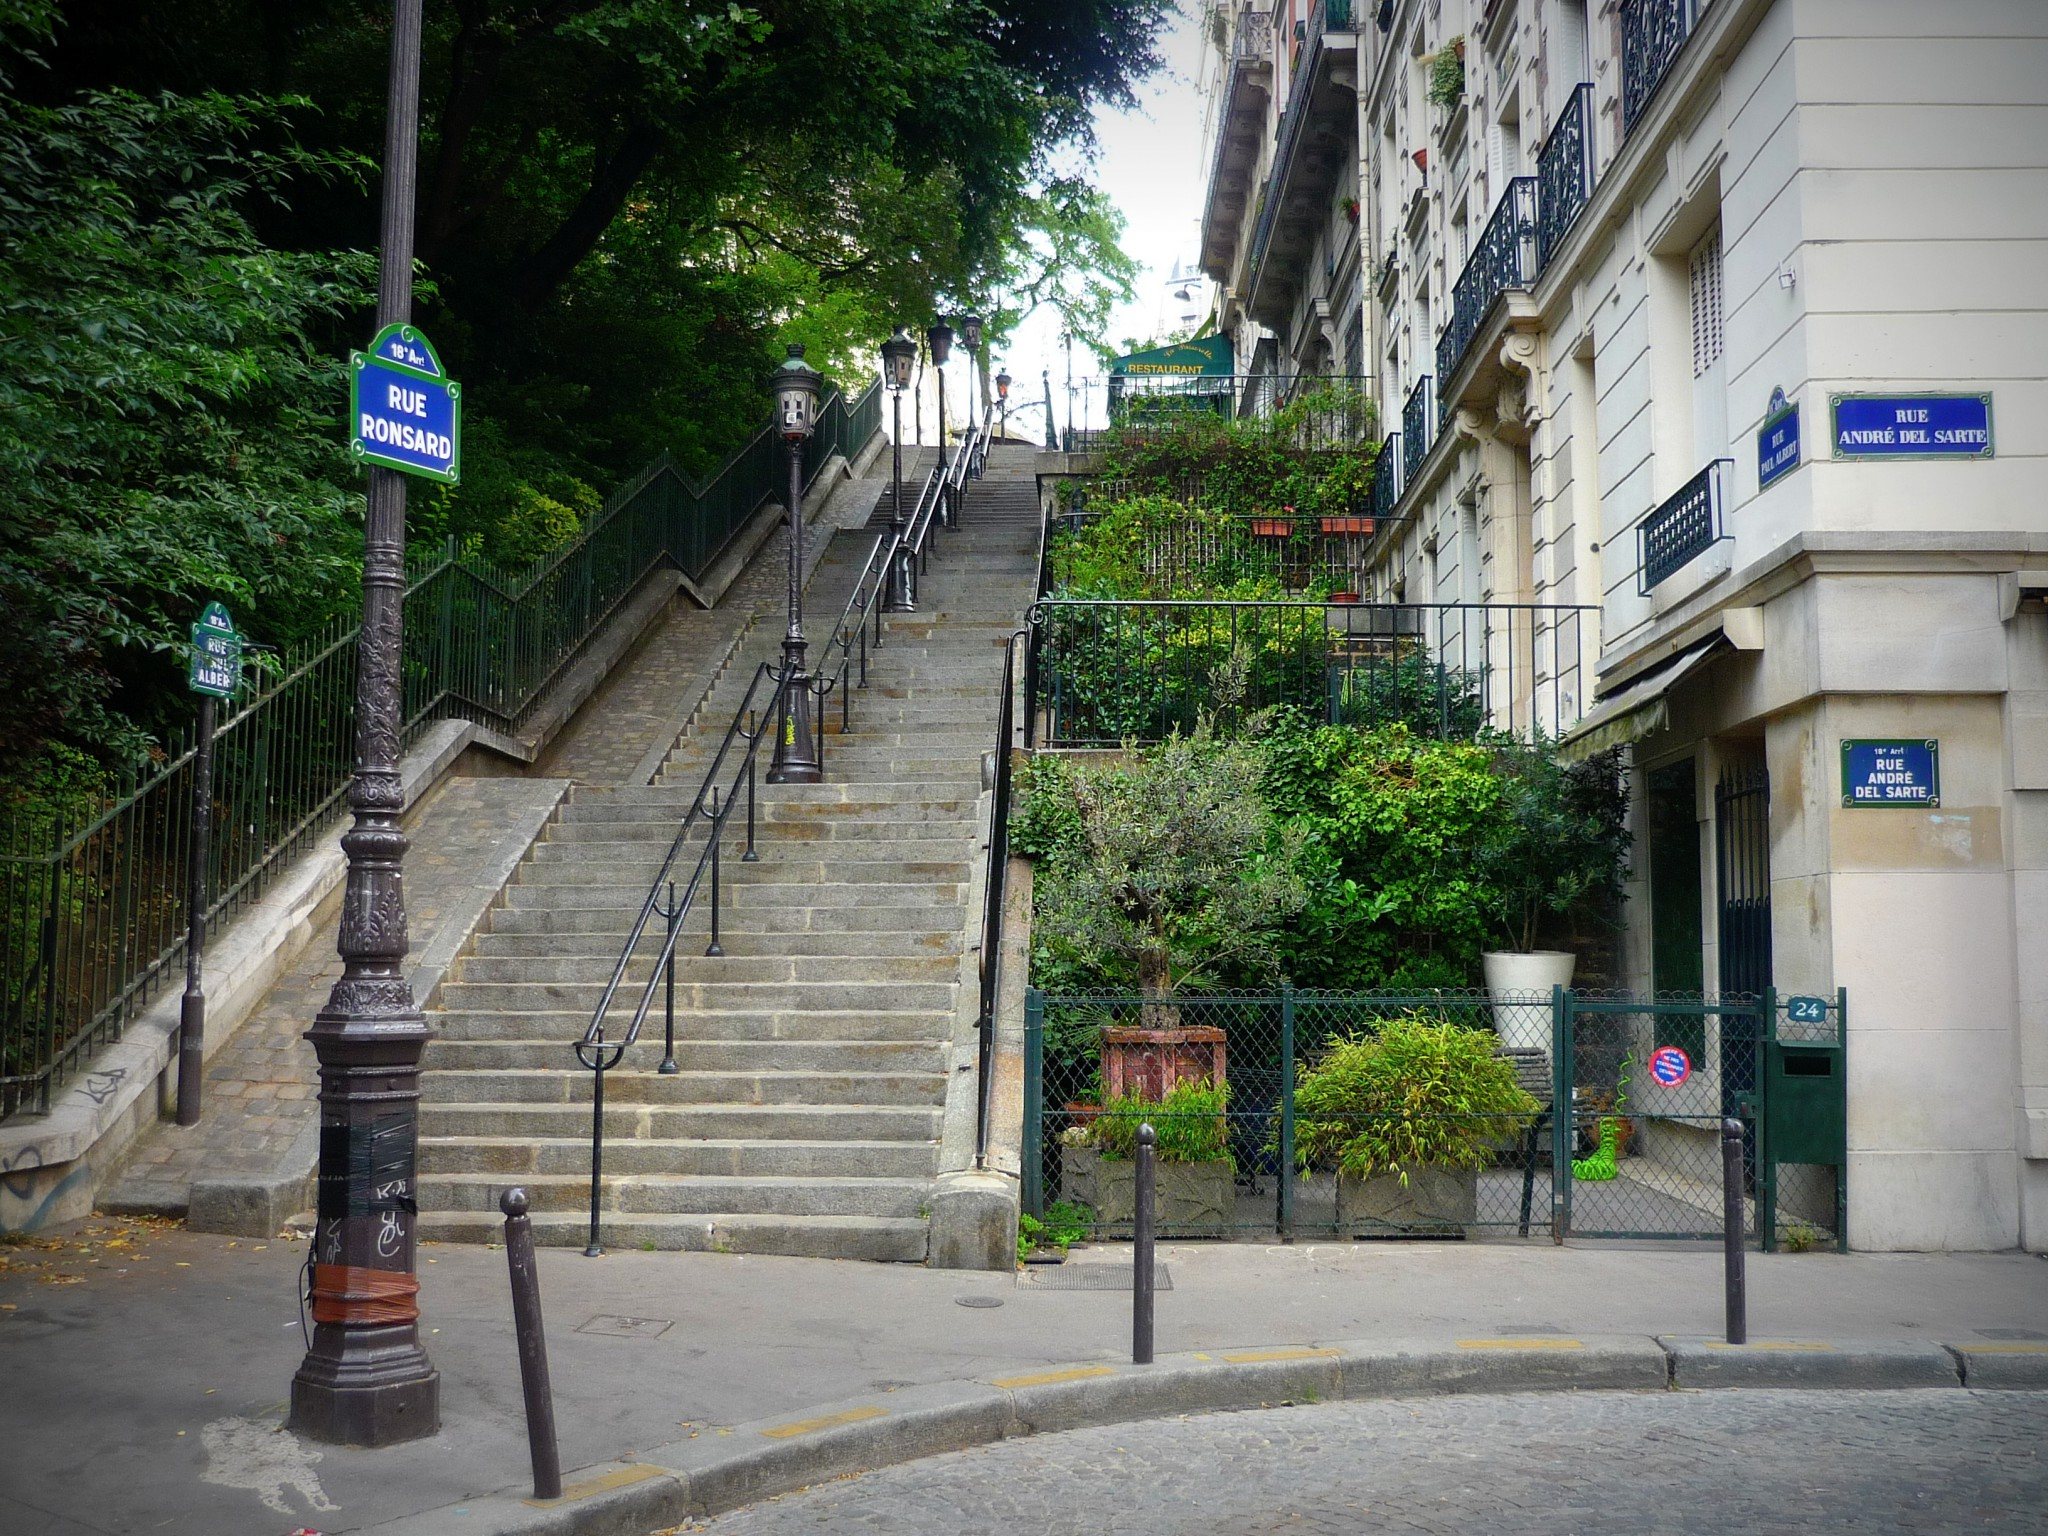 Stairs of rue Ronsard in Montmartre © French Moments